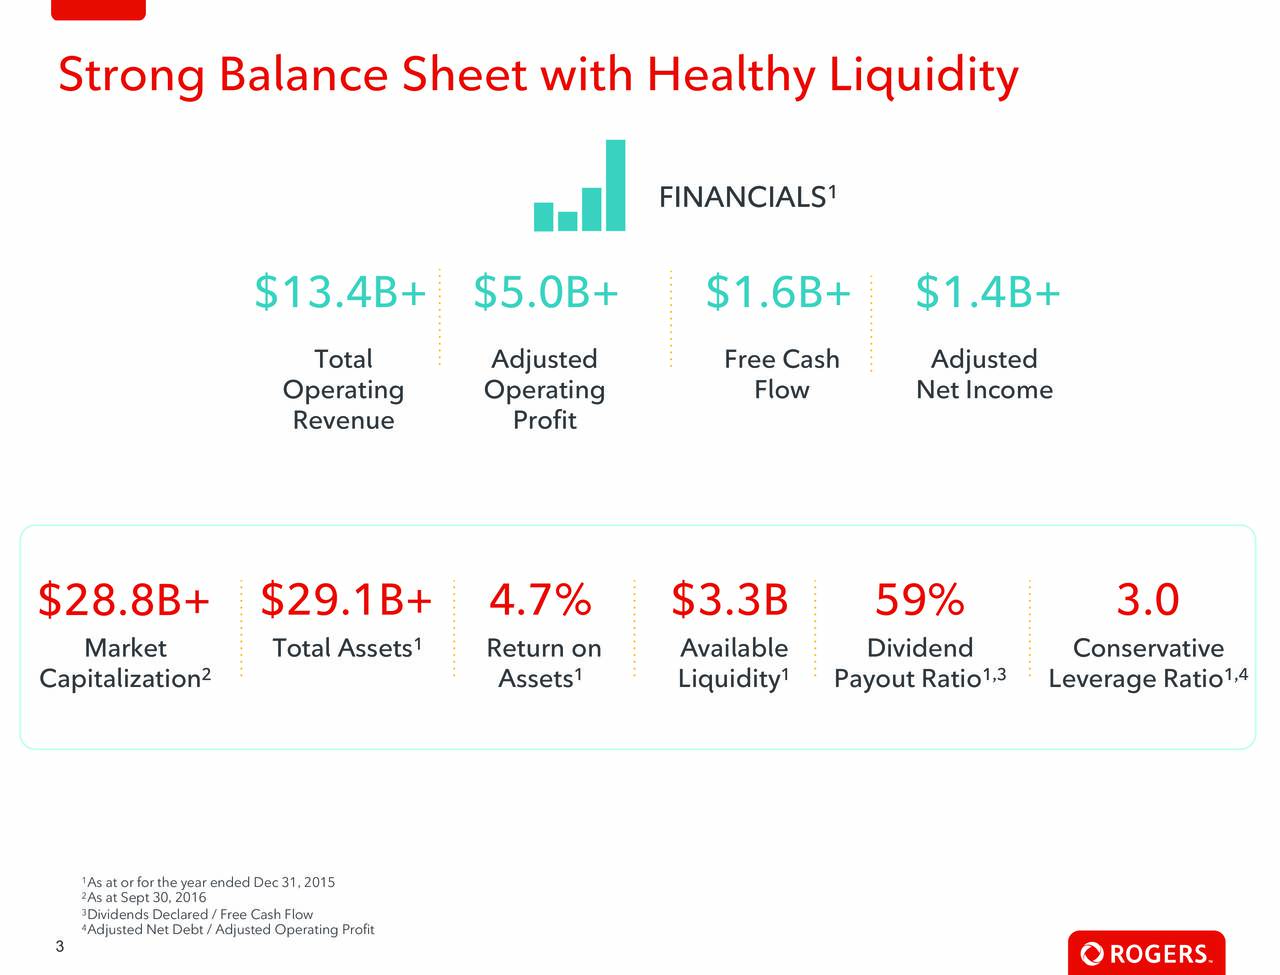 FINANCIALS 1 $13.4B+ $5.0B+ $1.6B+ $1.4B+ Total Adjusted Free Cash Adjusted Operating Operating Flow Net Income Revenue Profit $28.8B+ $29.1B+ 4.7% $3.3B 59% 3.0 Market Total Assets Return on Available Dividend Conservative Capitalization Assets Liquidity Payout Ratio,3 Leverage Ratio,4 2As at Sept 30, 2016ar ended Dec 31, 2015 4Adjusted Net Debt / Adjusted Operating Profit 3